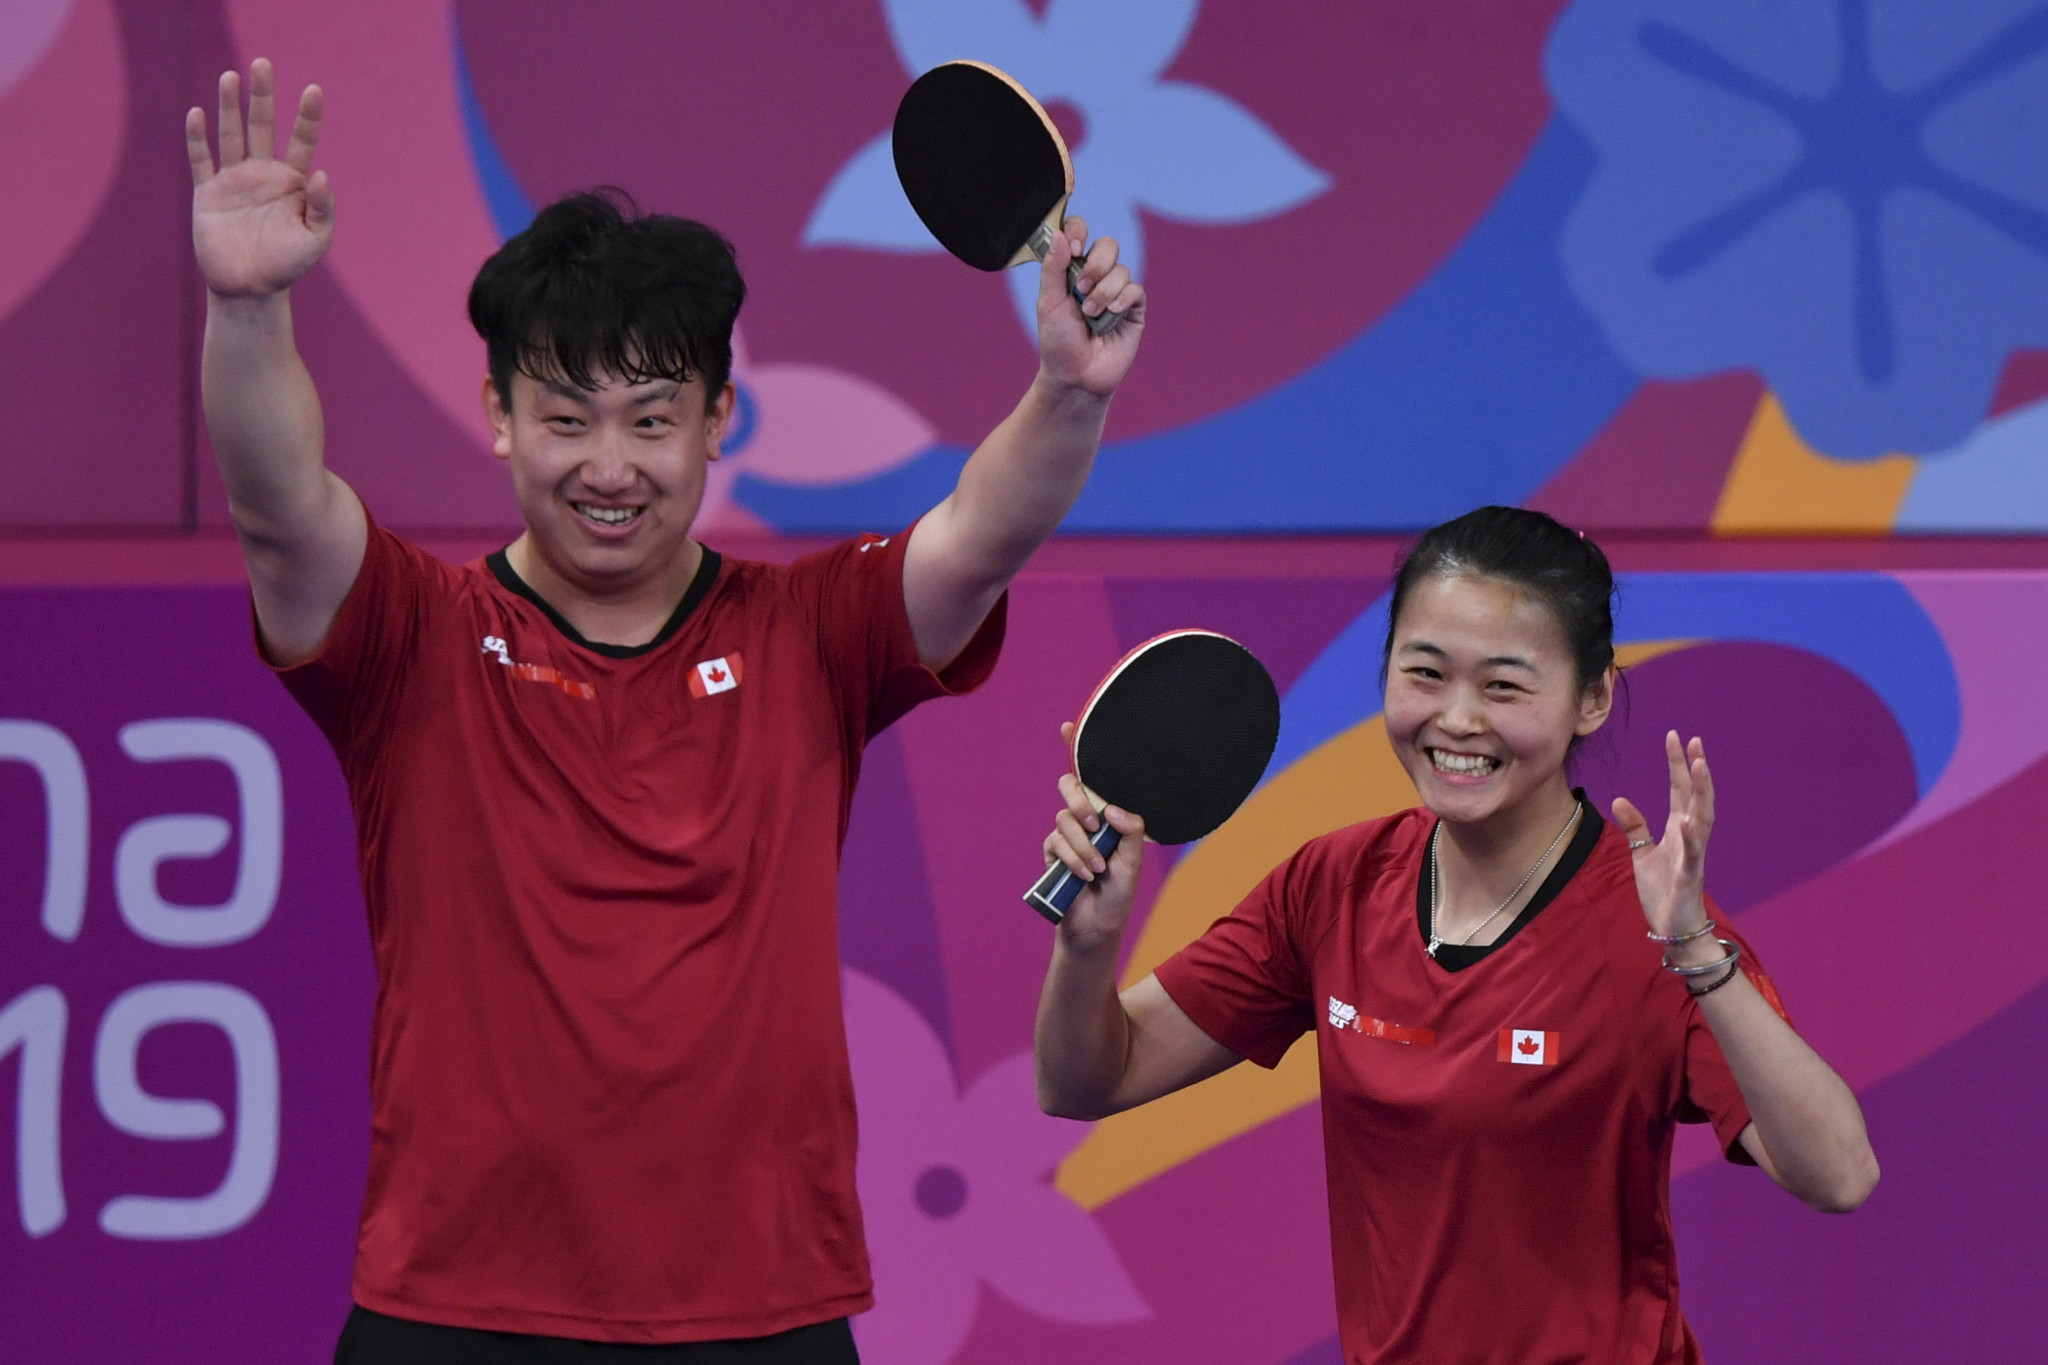 Zhang and Wang qualify for Tokyo 2020 at ITTF North American Olympic qualifiers